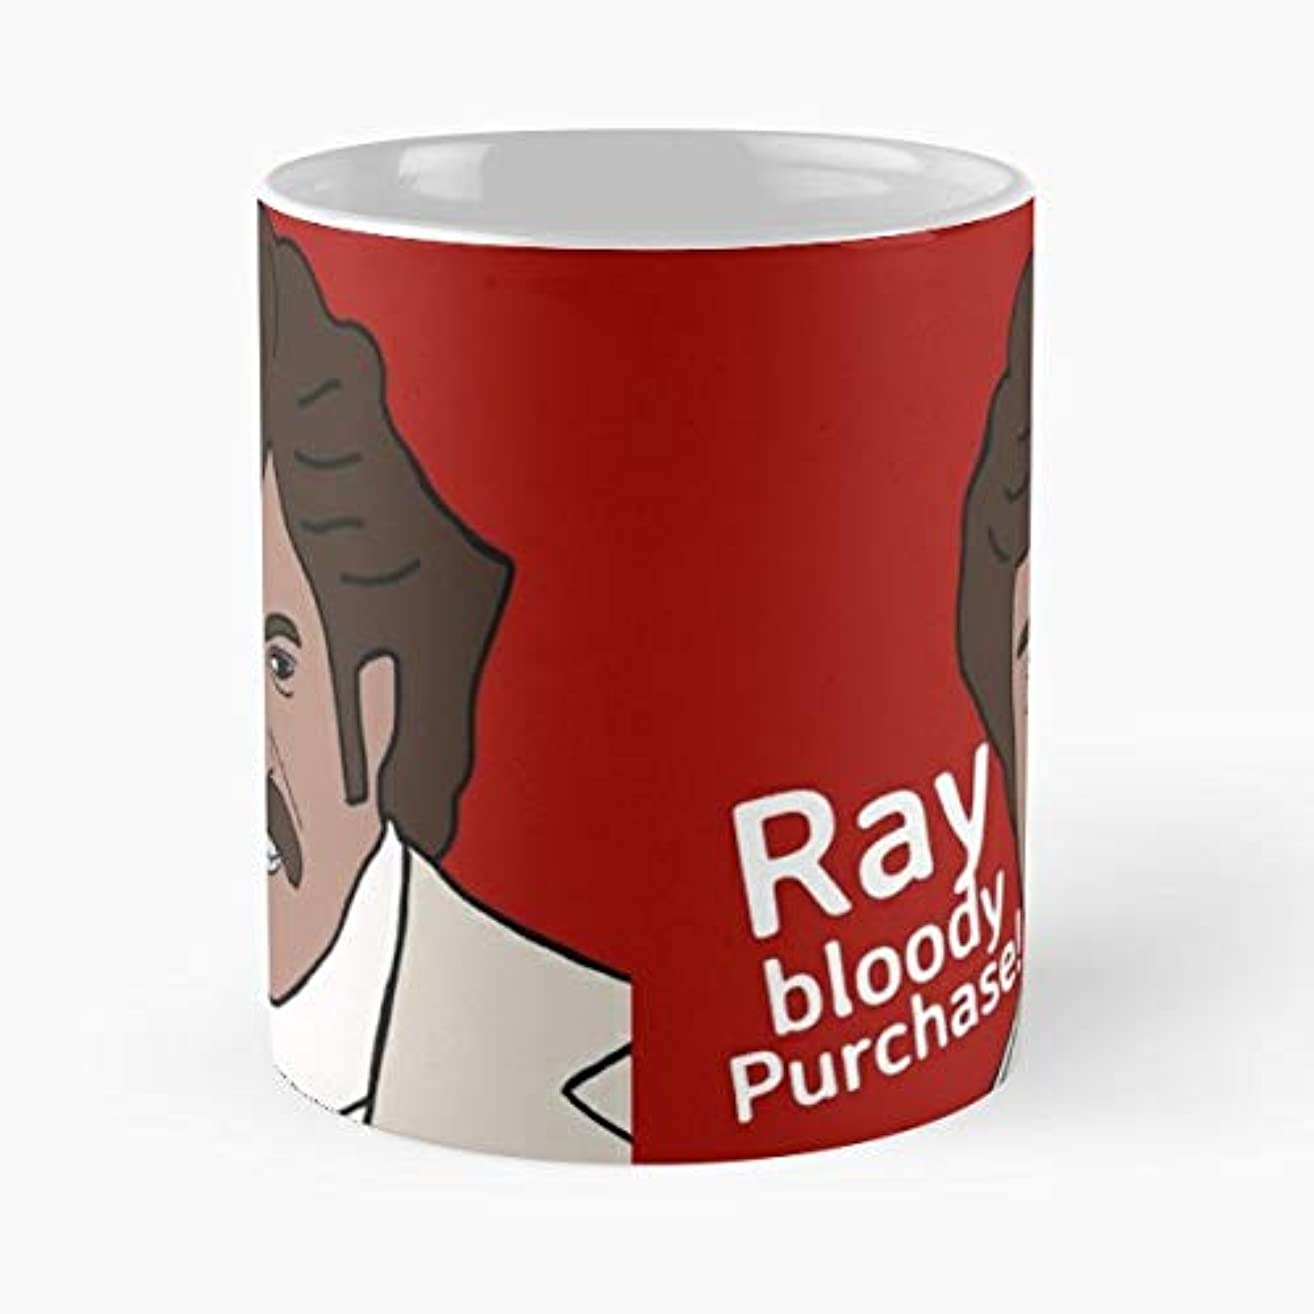 Toast Of London Ray Purchase Funny Coffee Mugs Unique Ceramic Novelty Cup